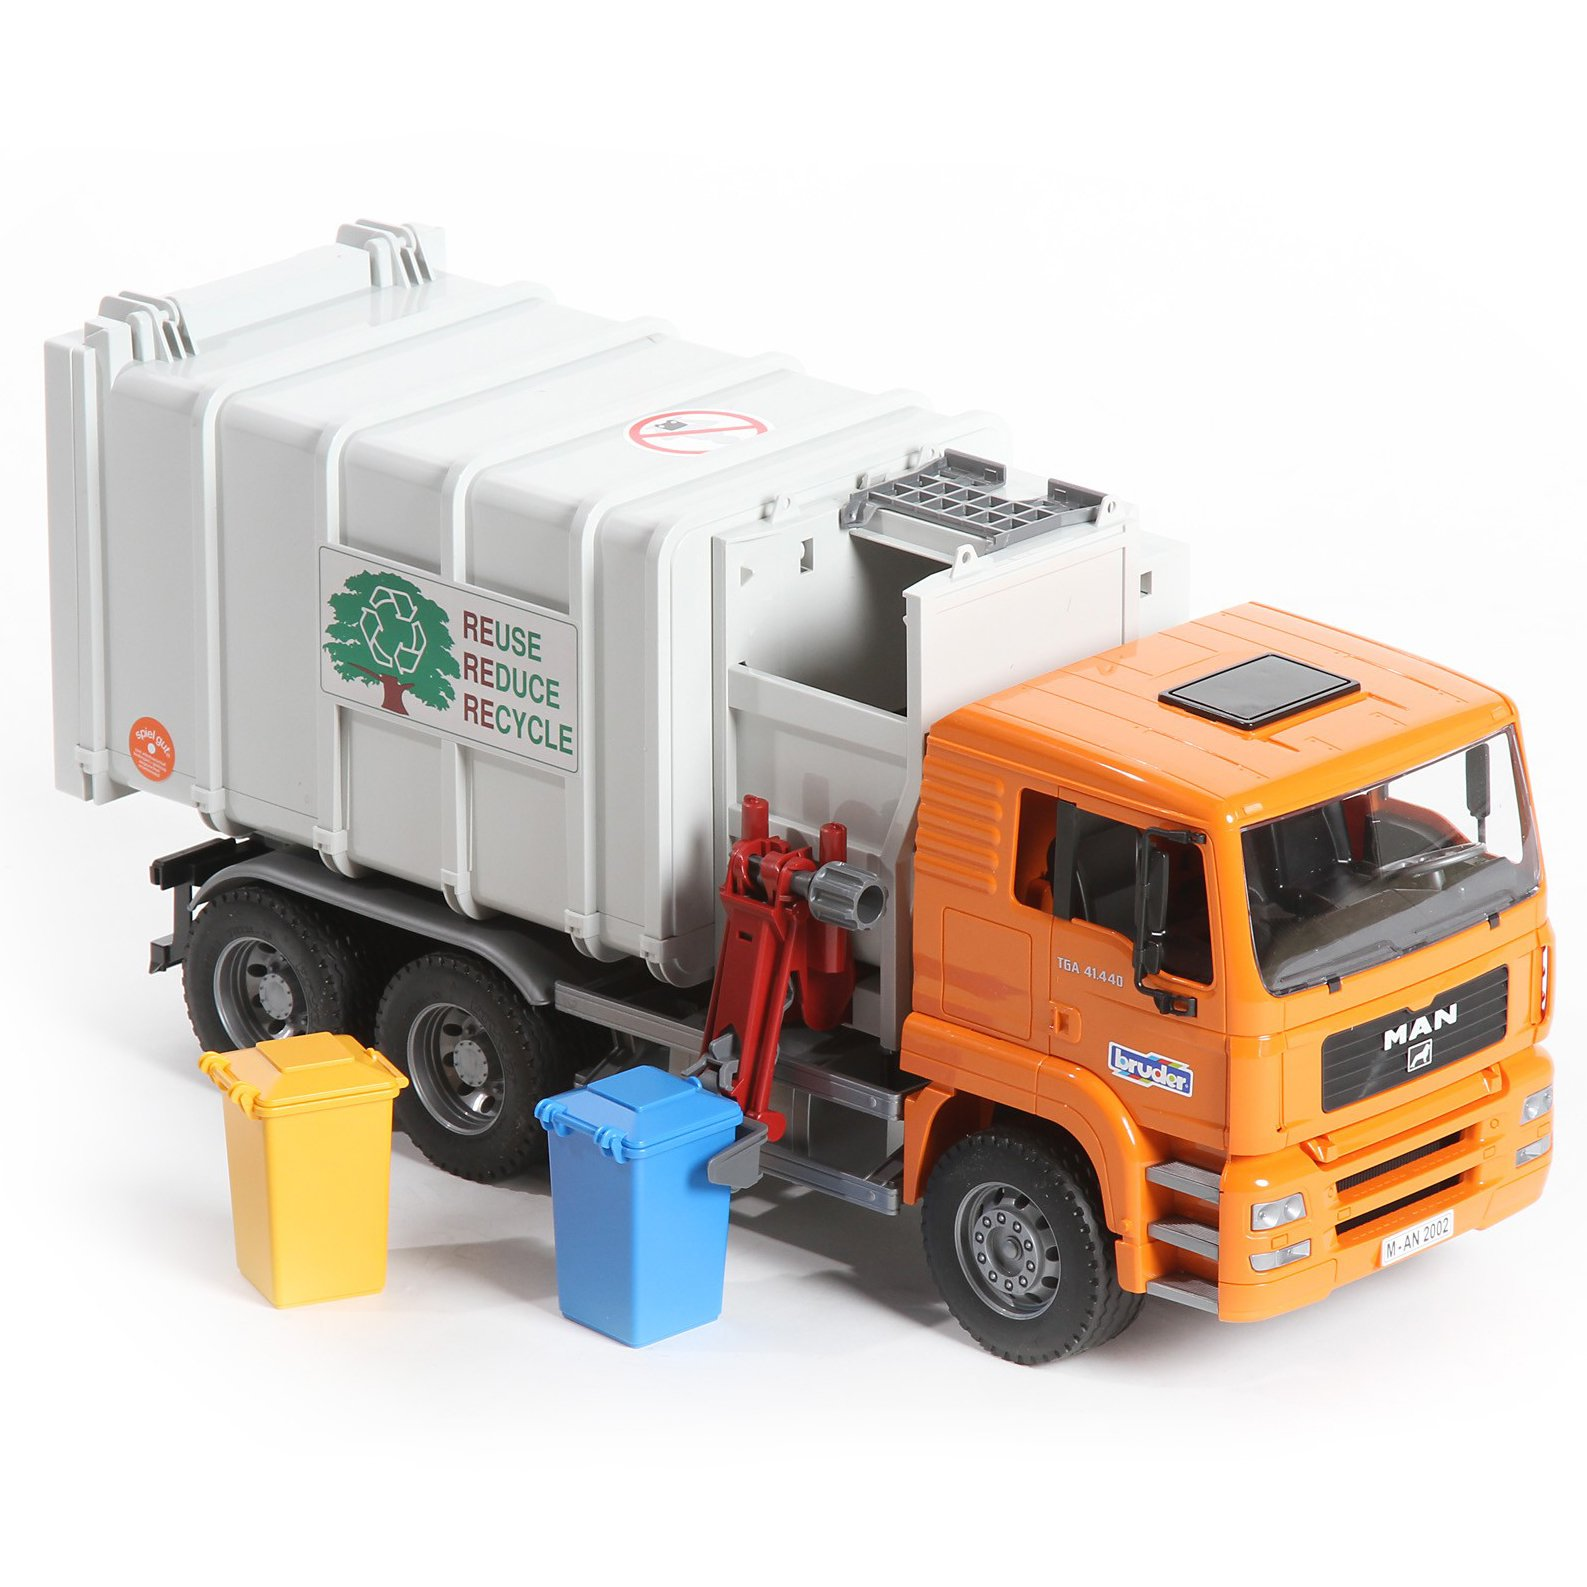 Bruder Toys MAN Side-Loading Garbage Truck with 2 Refuse Bins | 02761 by Bruder Toys